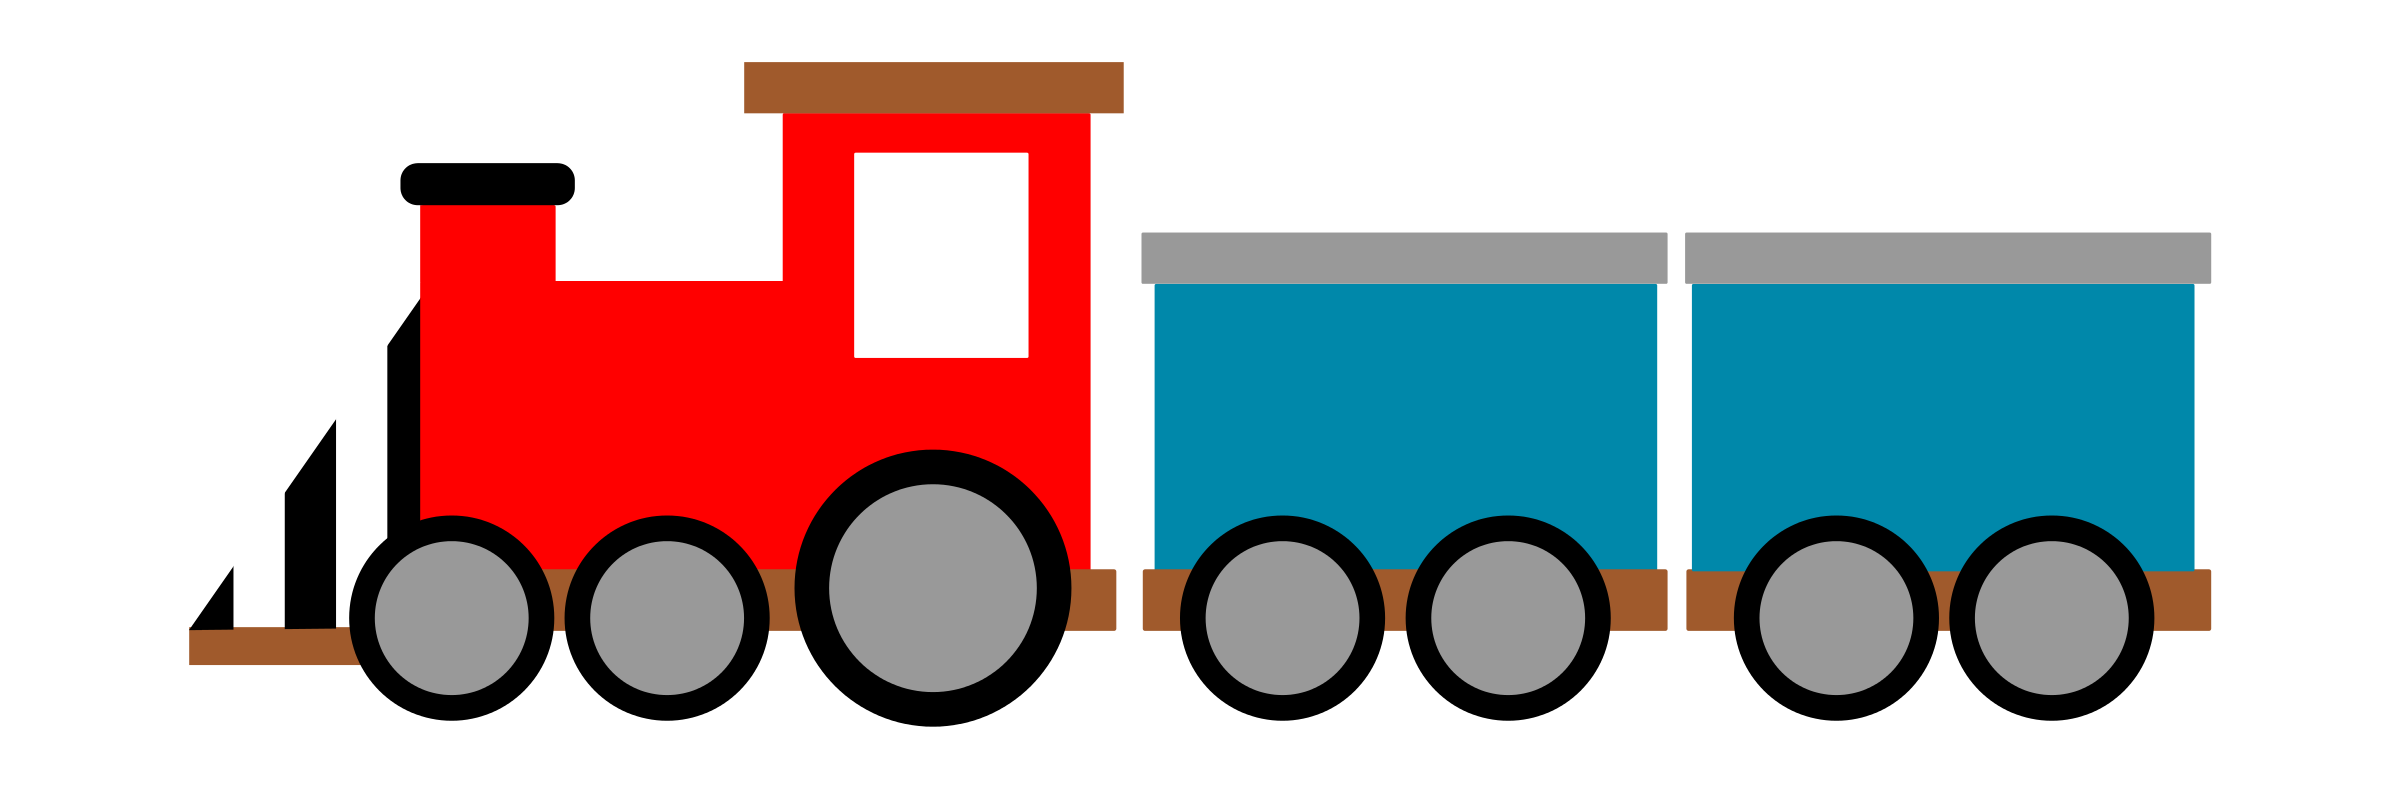 cartoon images of trains   clipart best   cliparts co